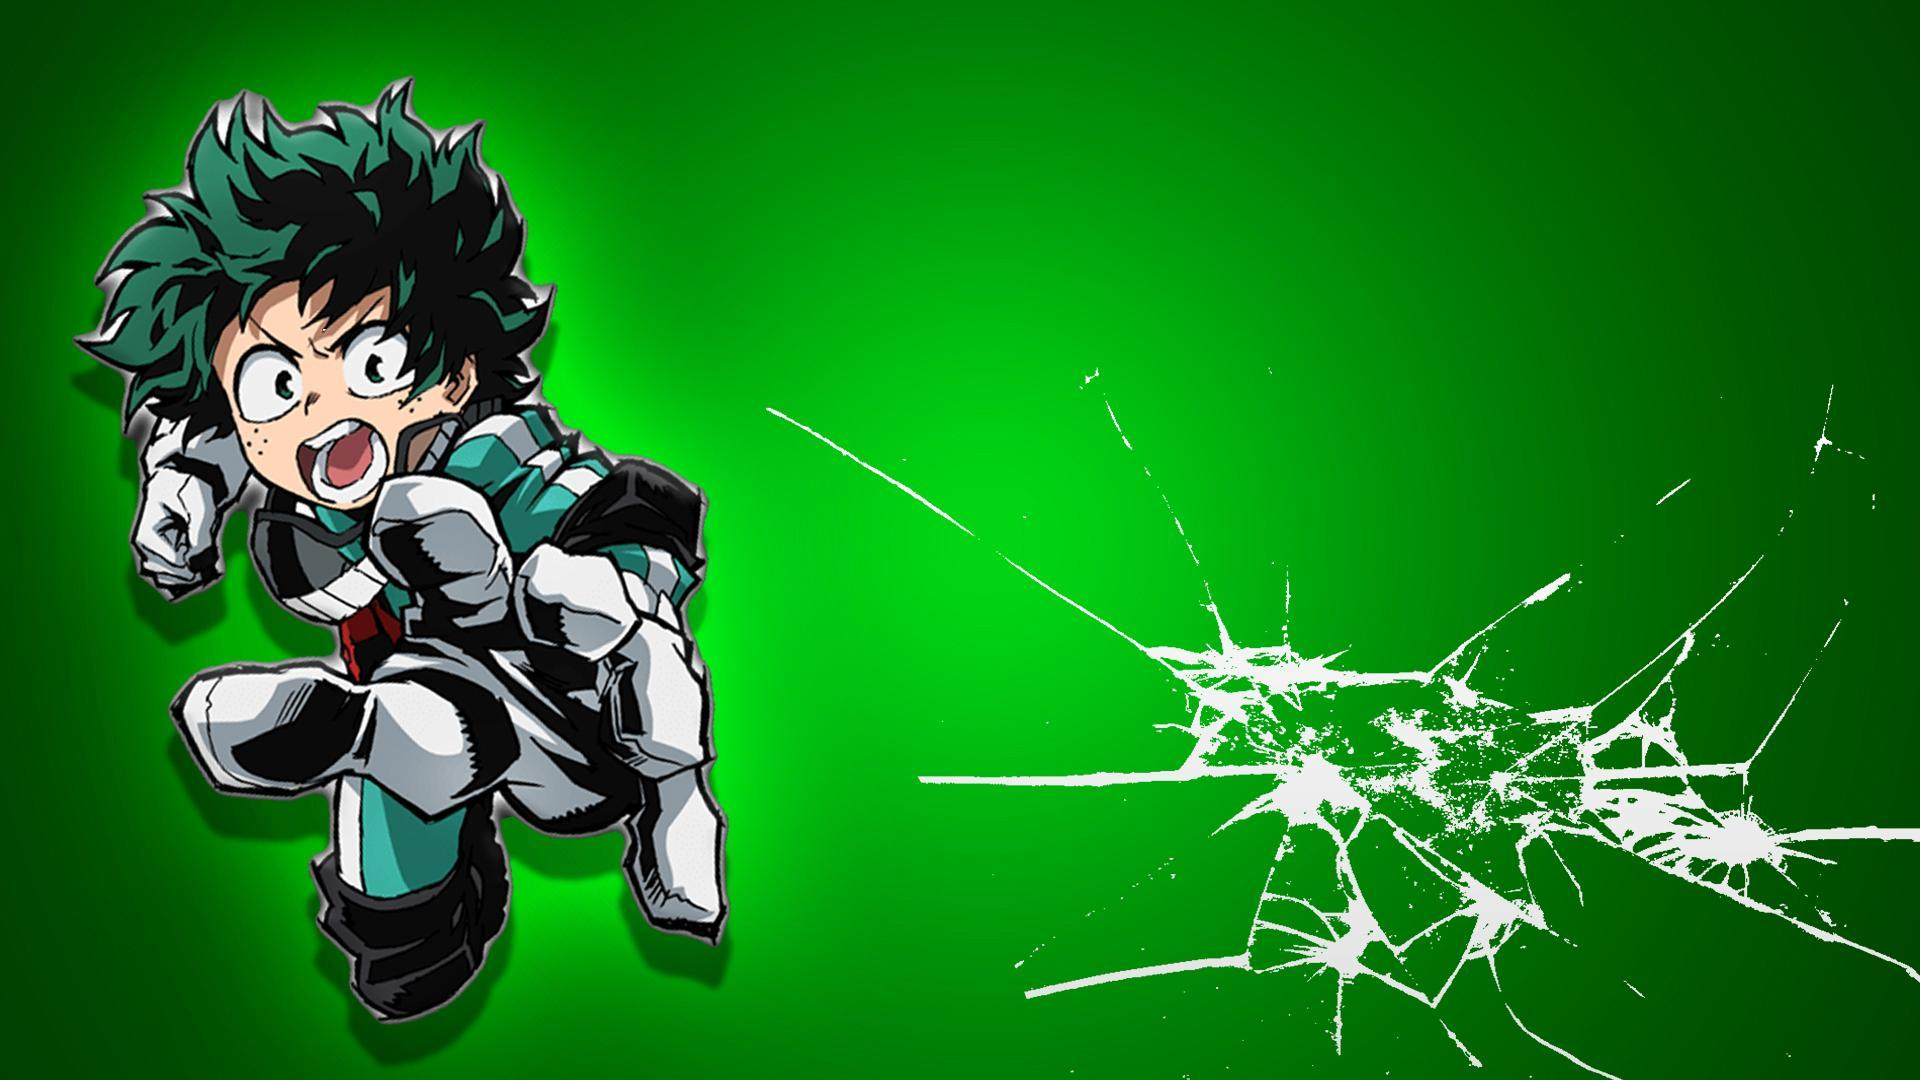 A Quick, Simple Wallpapers of Izuku from My Hero Academia